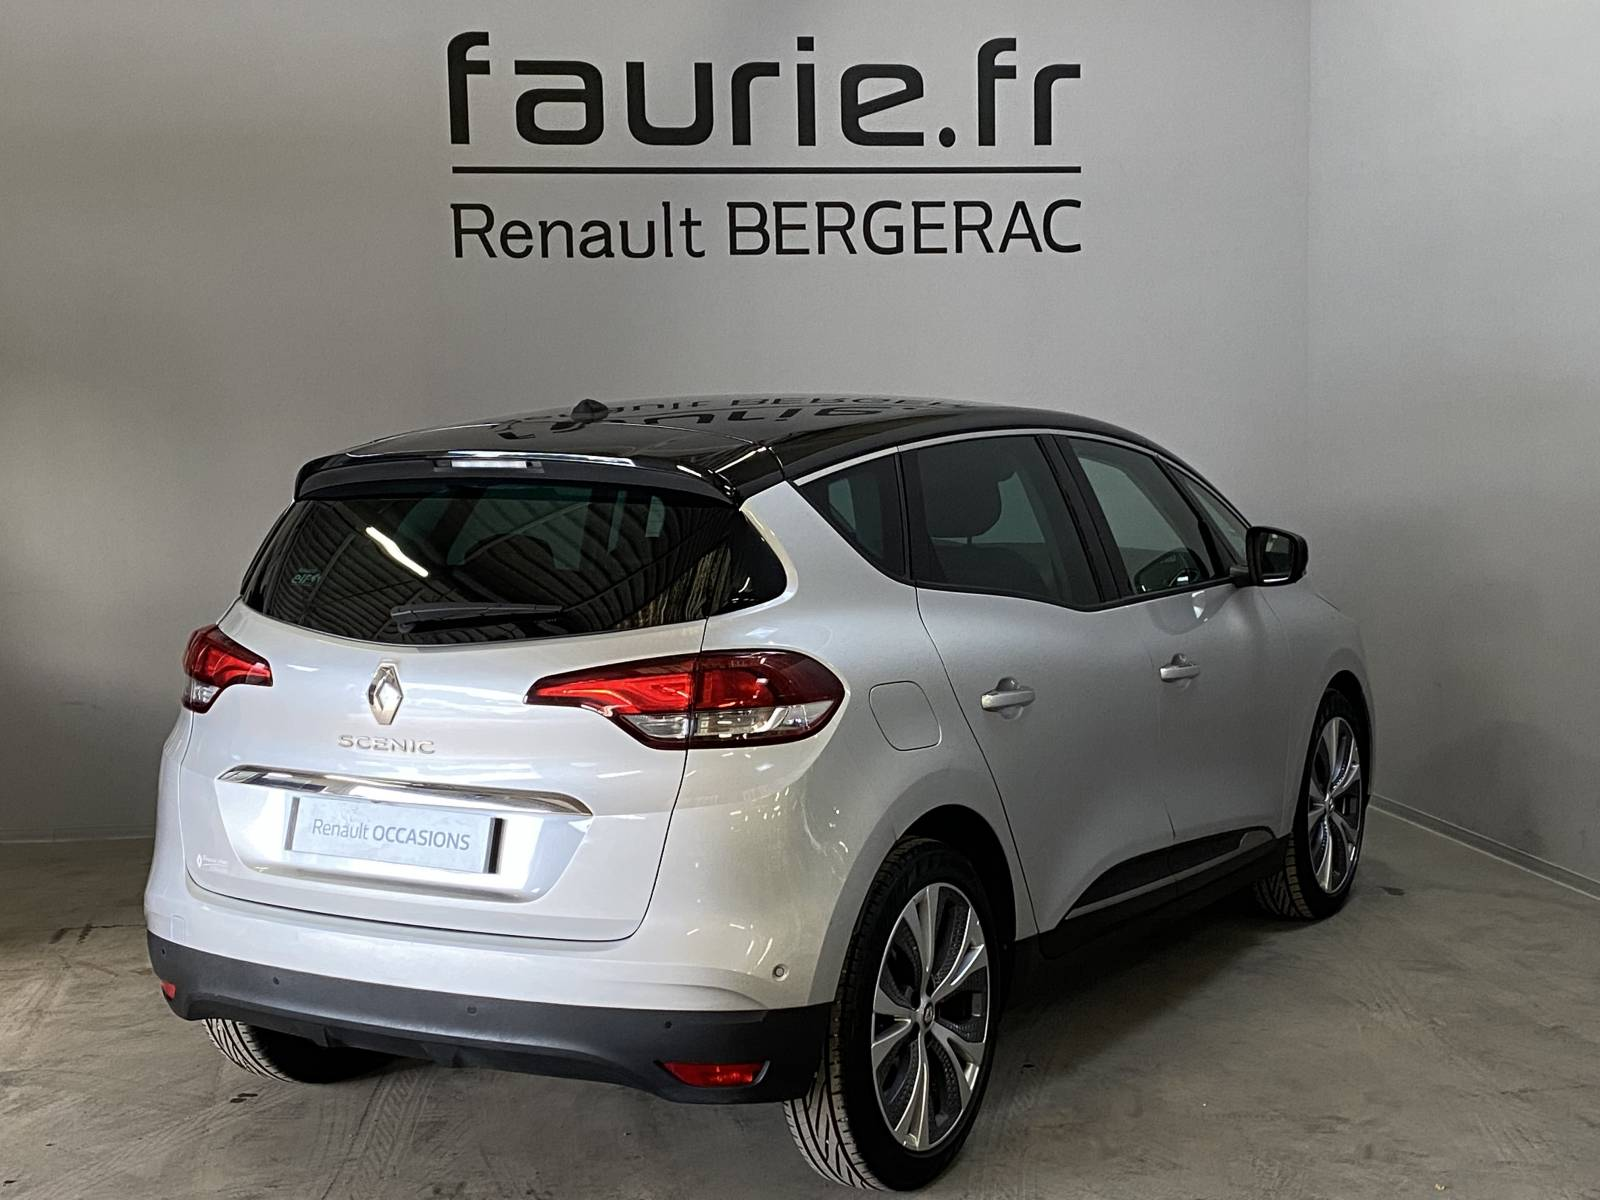 RENAULT Scenic dCi 130 Energy - véhicule d'occasion - Site Internet Faurie - Renault - Faurie Auto Bergerac - 24100 - Bergerac - 5